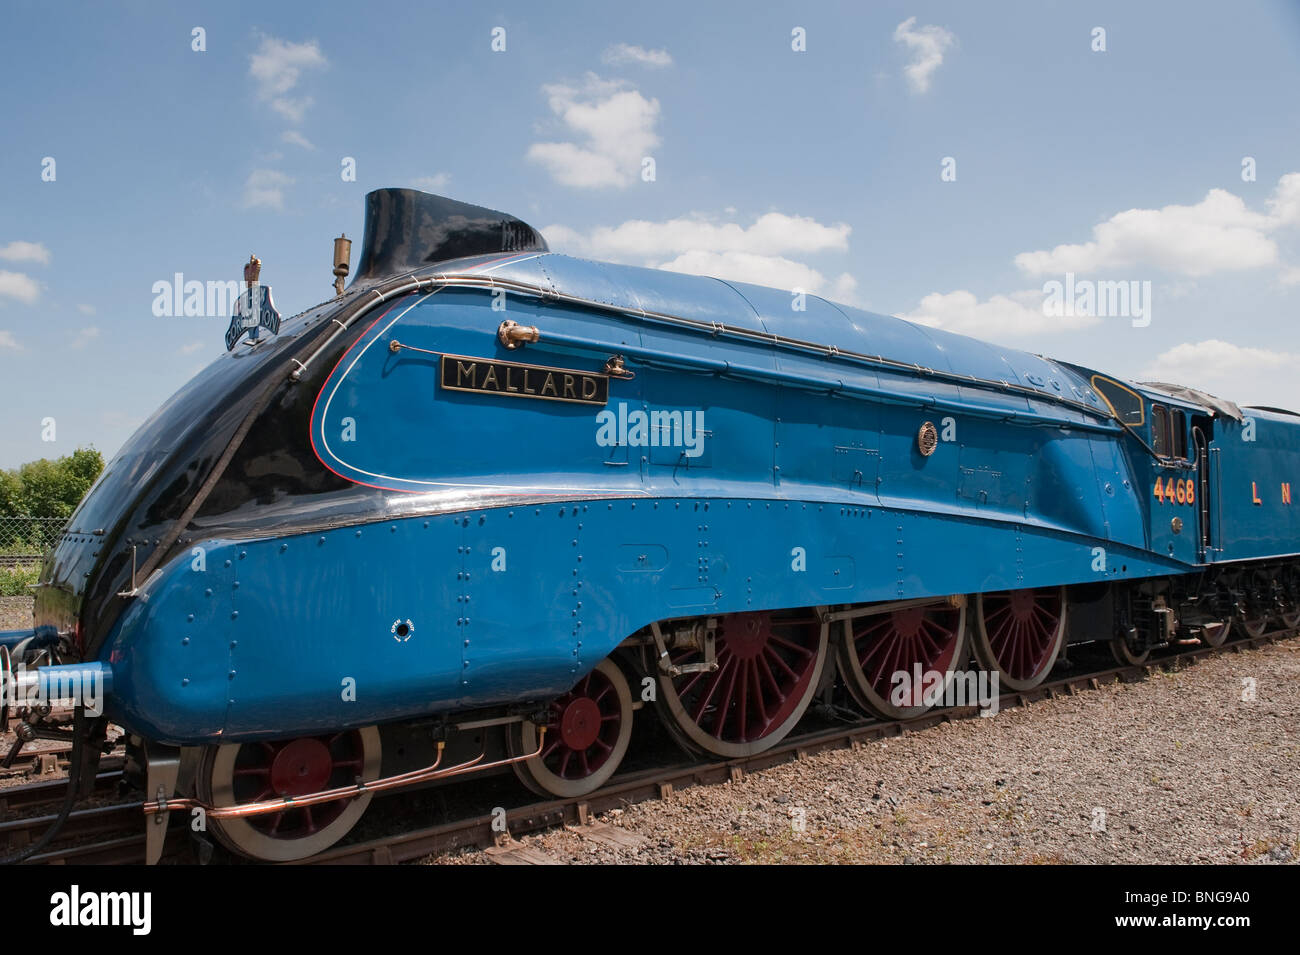 The LNER Class A4 4468 Mallard steam train at the National Railway Museum, York. - Stock Image